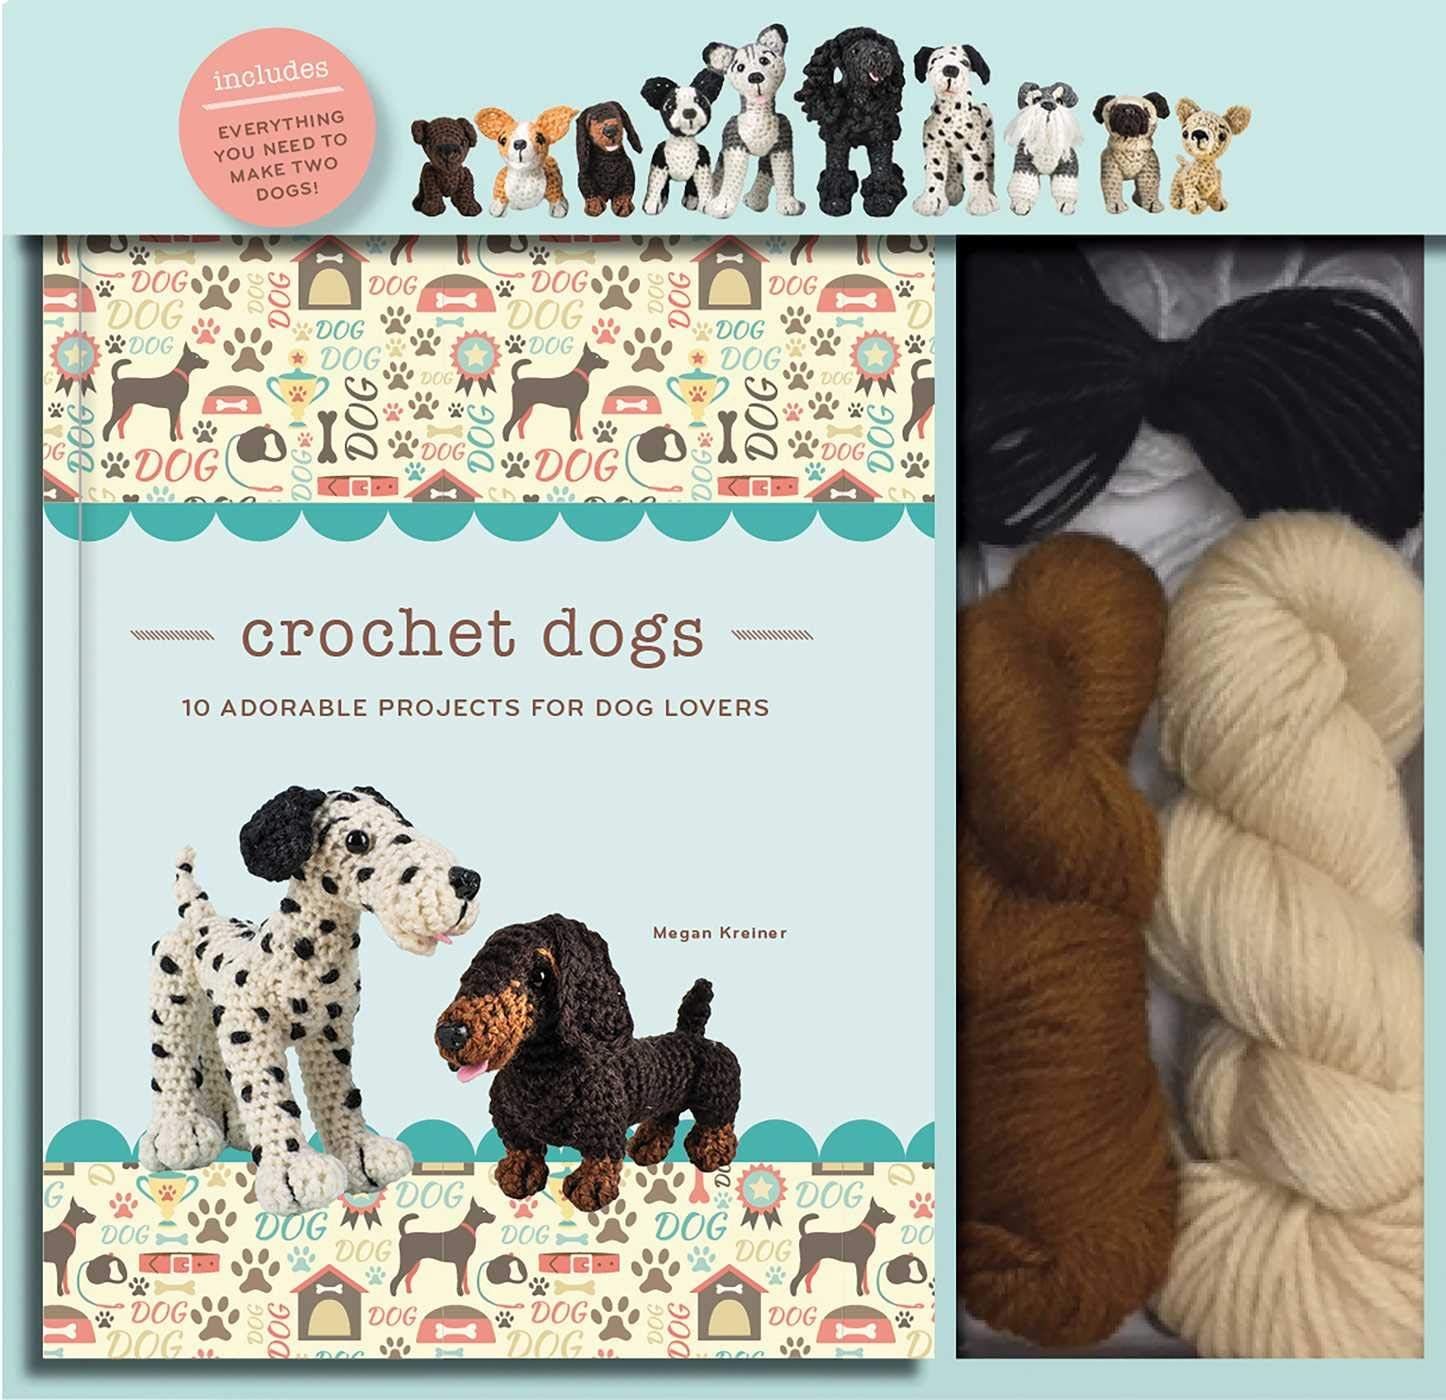 Image OfCrochet Dogs: 10 Adorable Projects For Dog Lovers